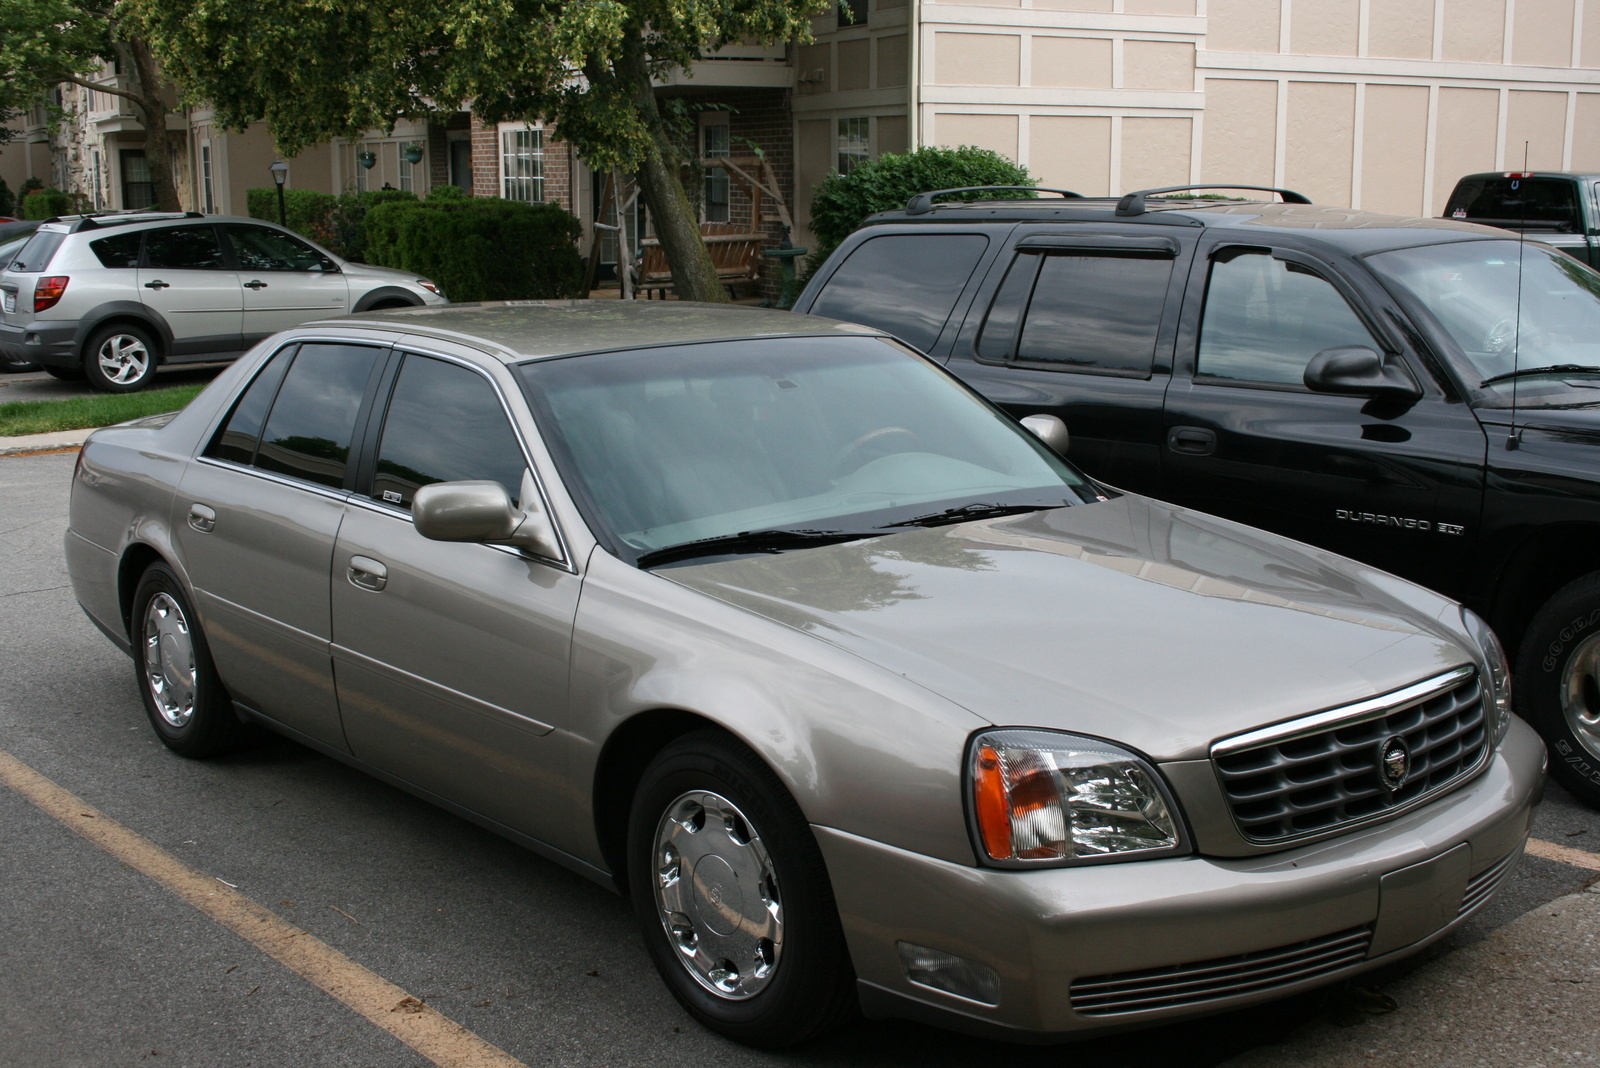 2001 Cadillac Deville - Overview